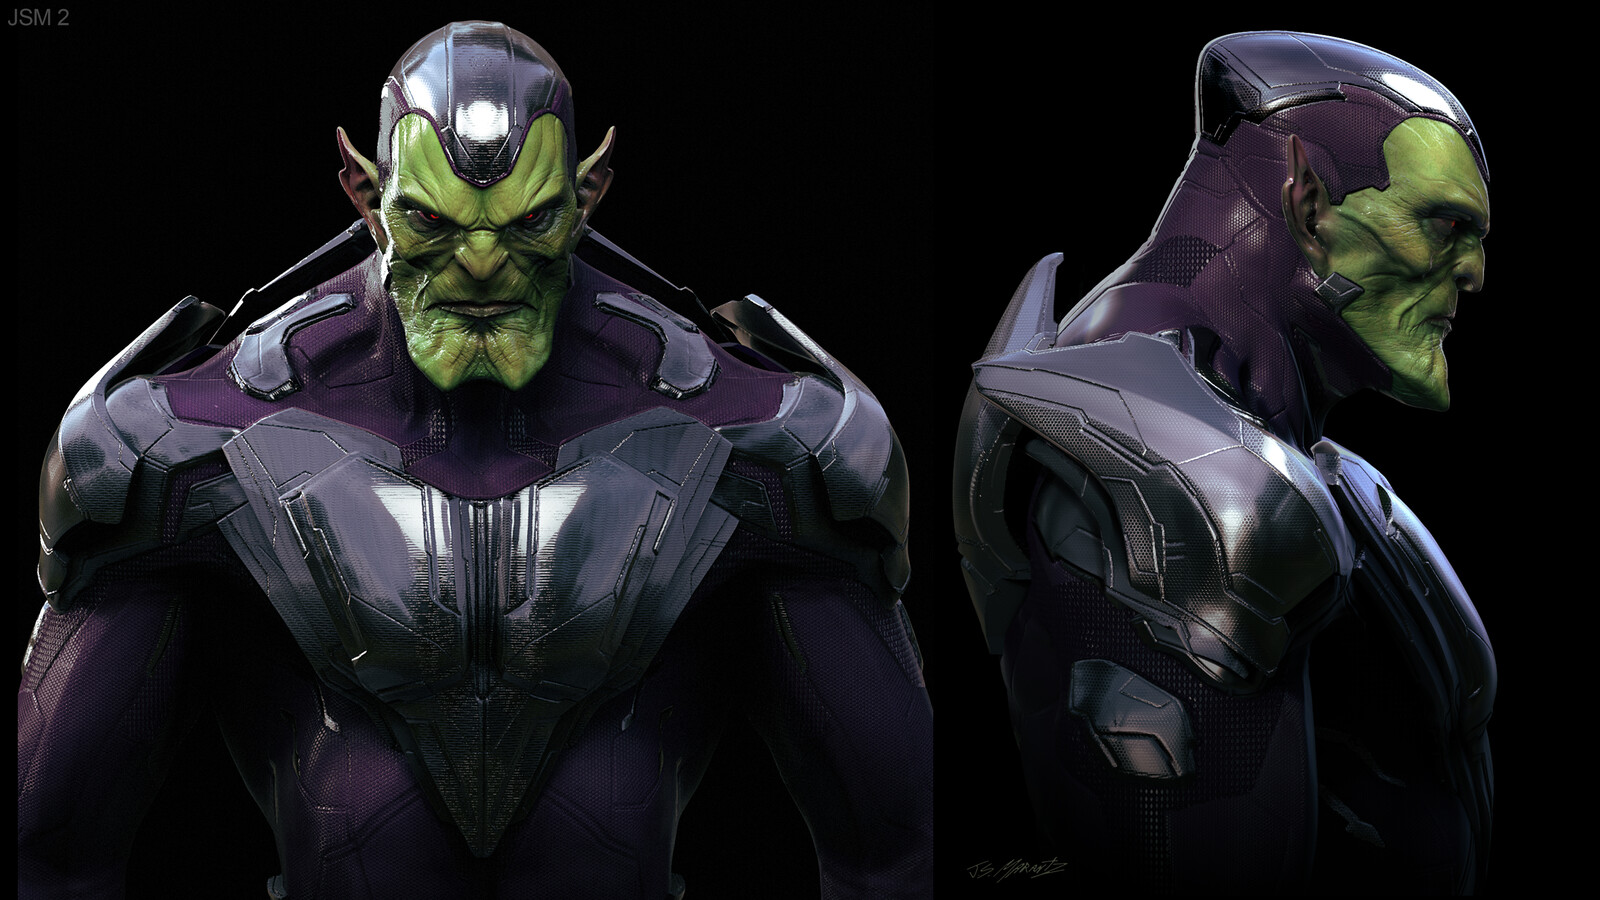 Captain Marvel: Skrull Designs